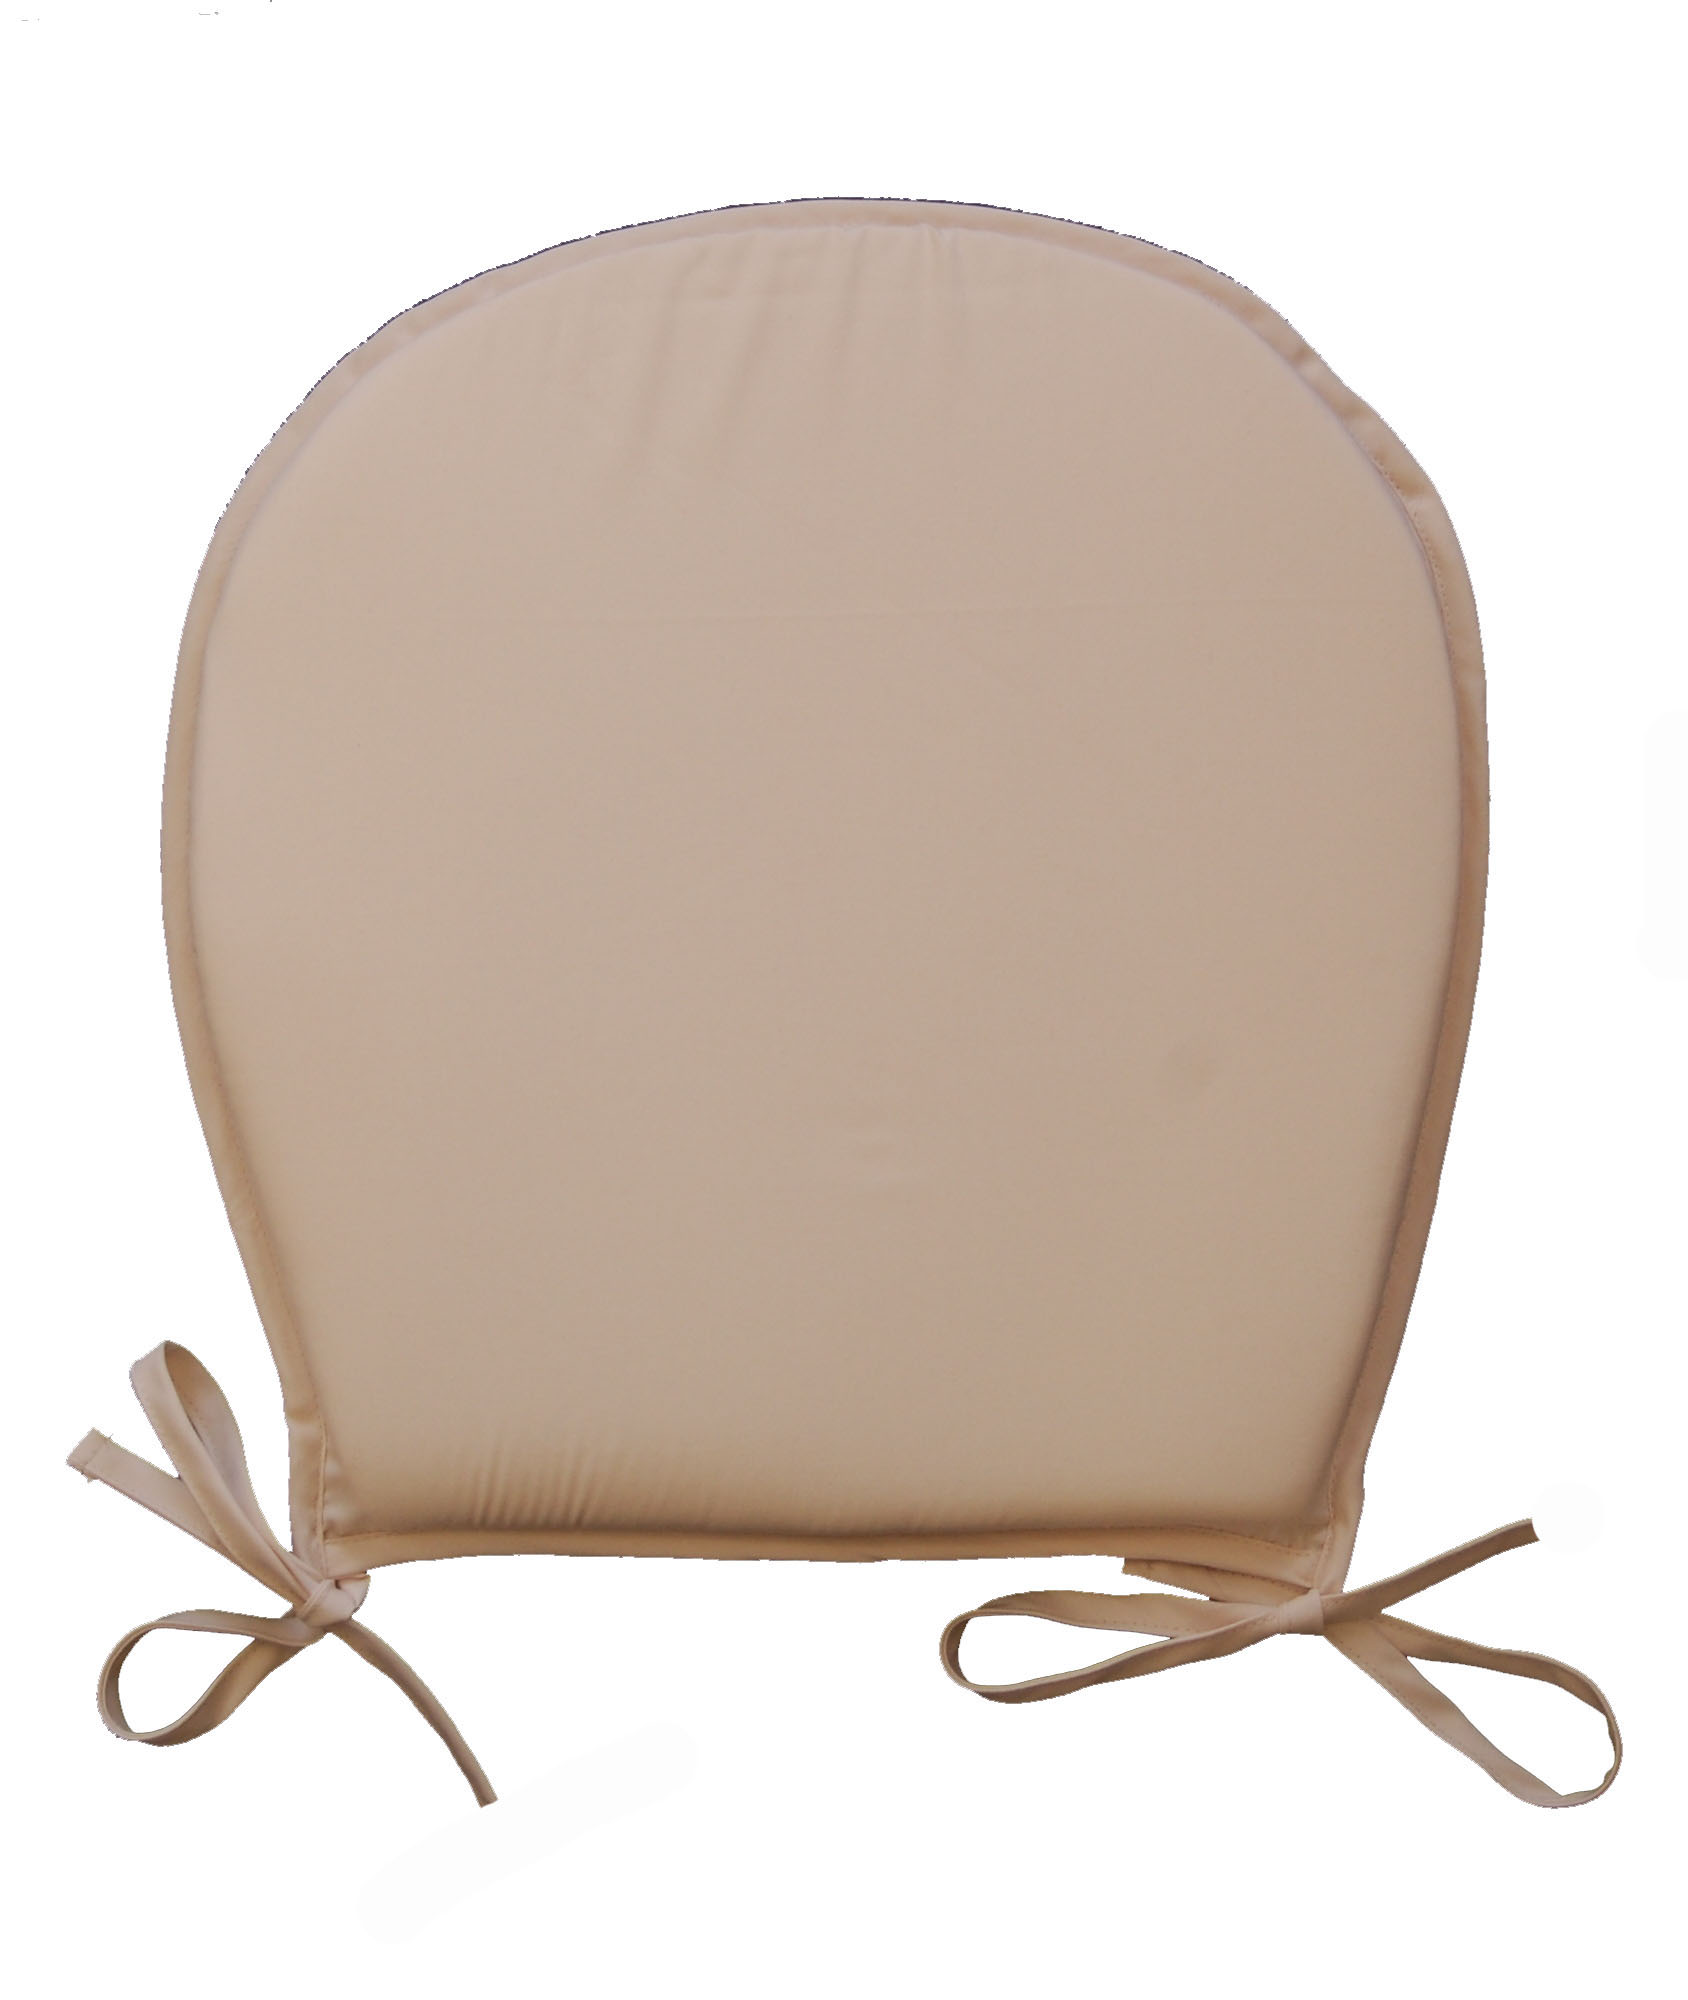 Chair Seat Pads Plain Round Kitchen Garden Furniture Cushion Pad Assorted Col